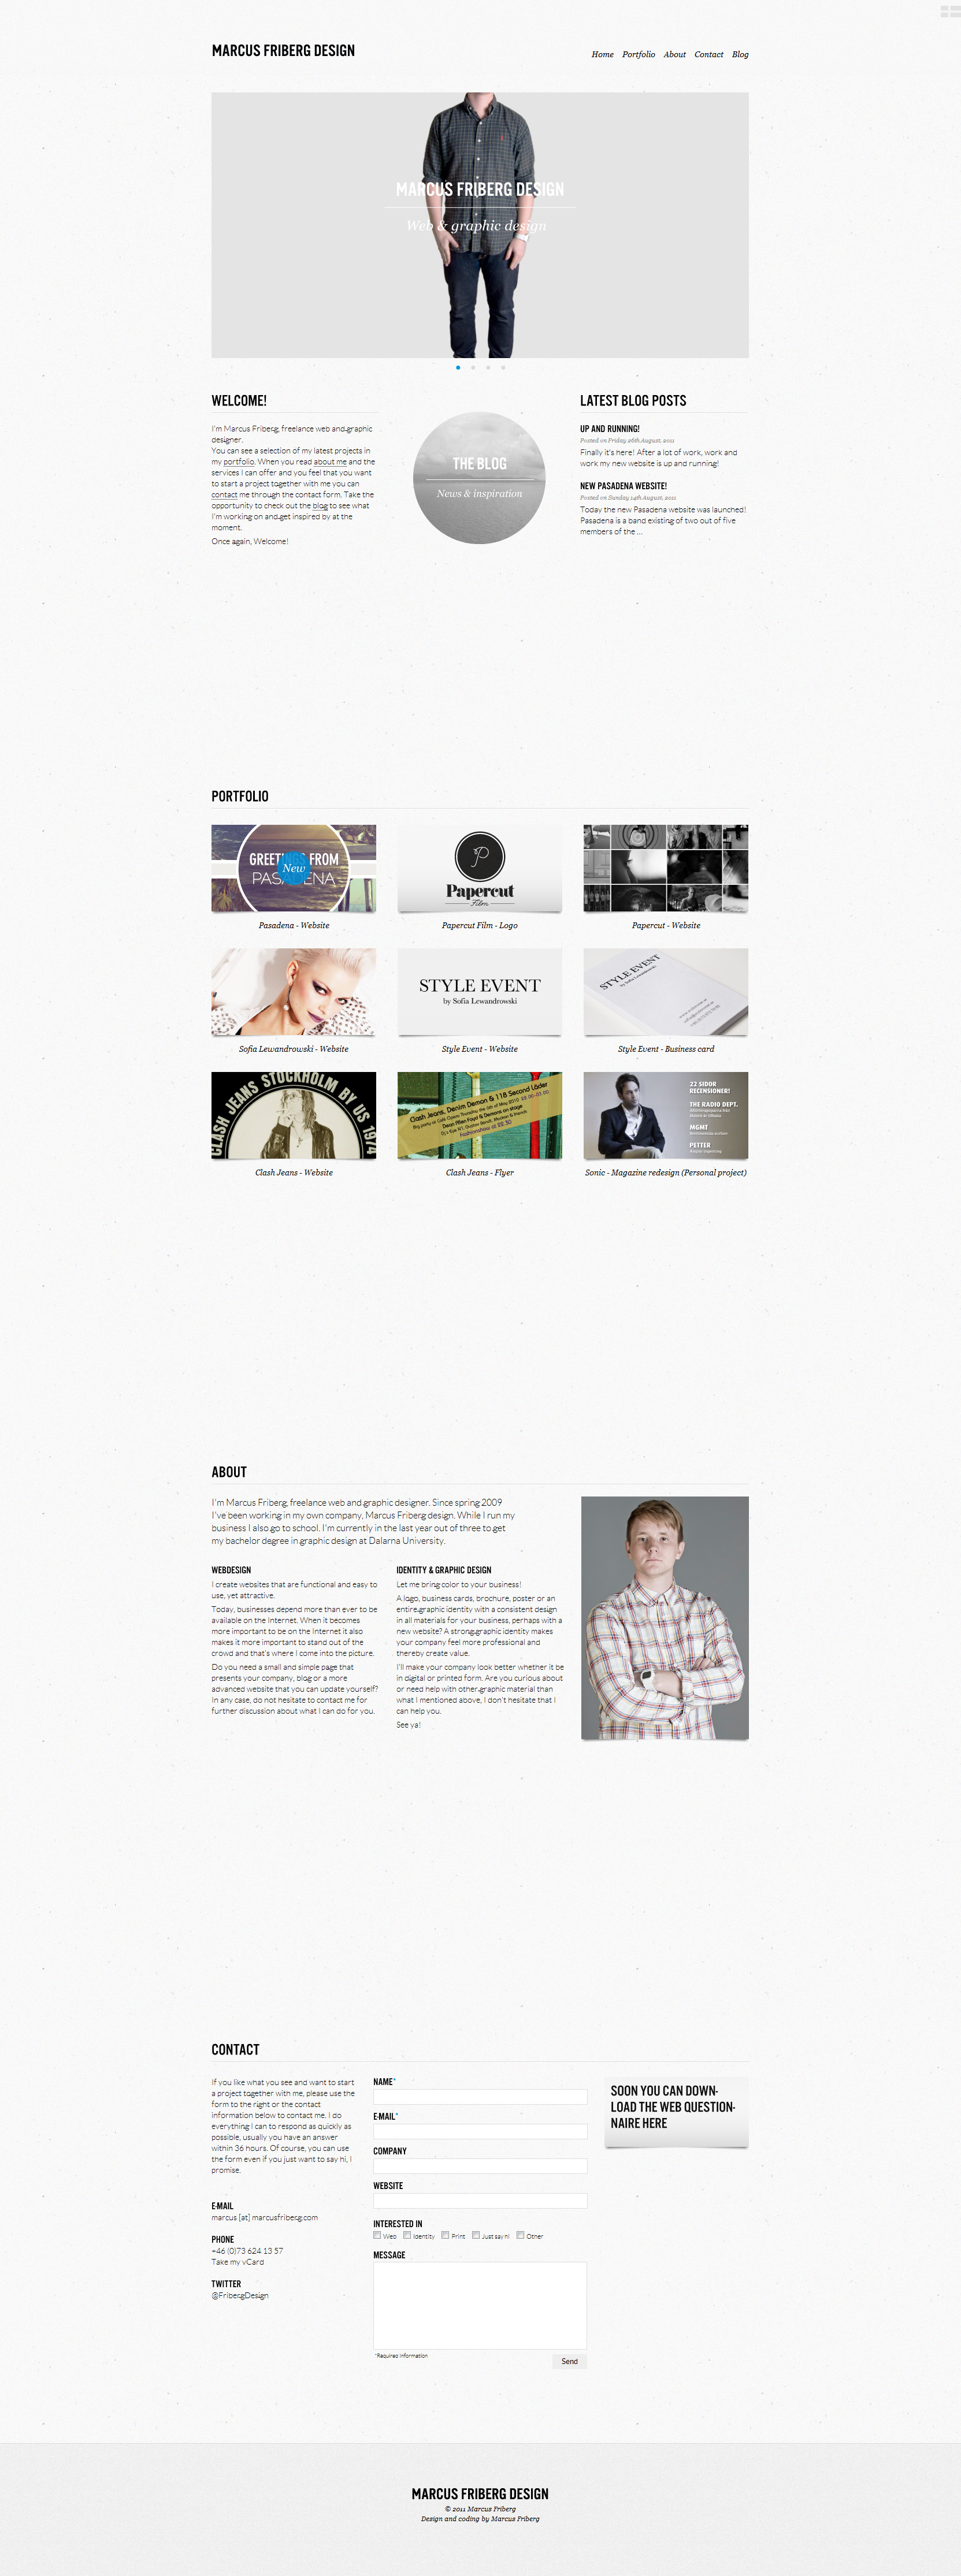 Marcus Friberg Design Website Screenshot